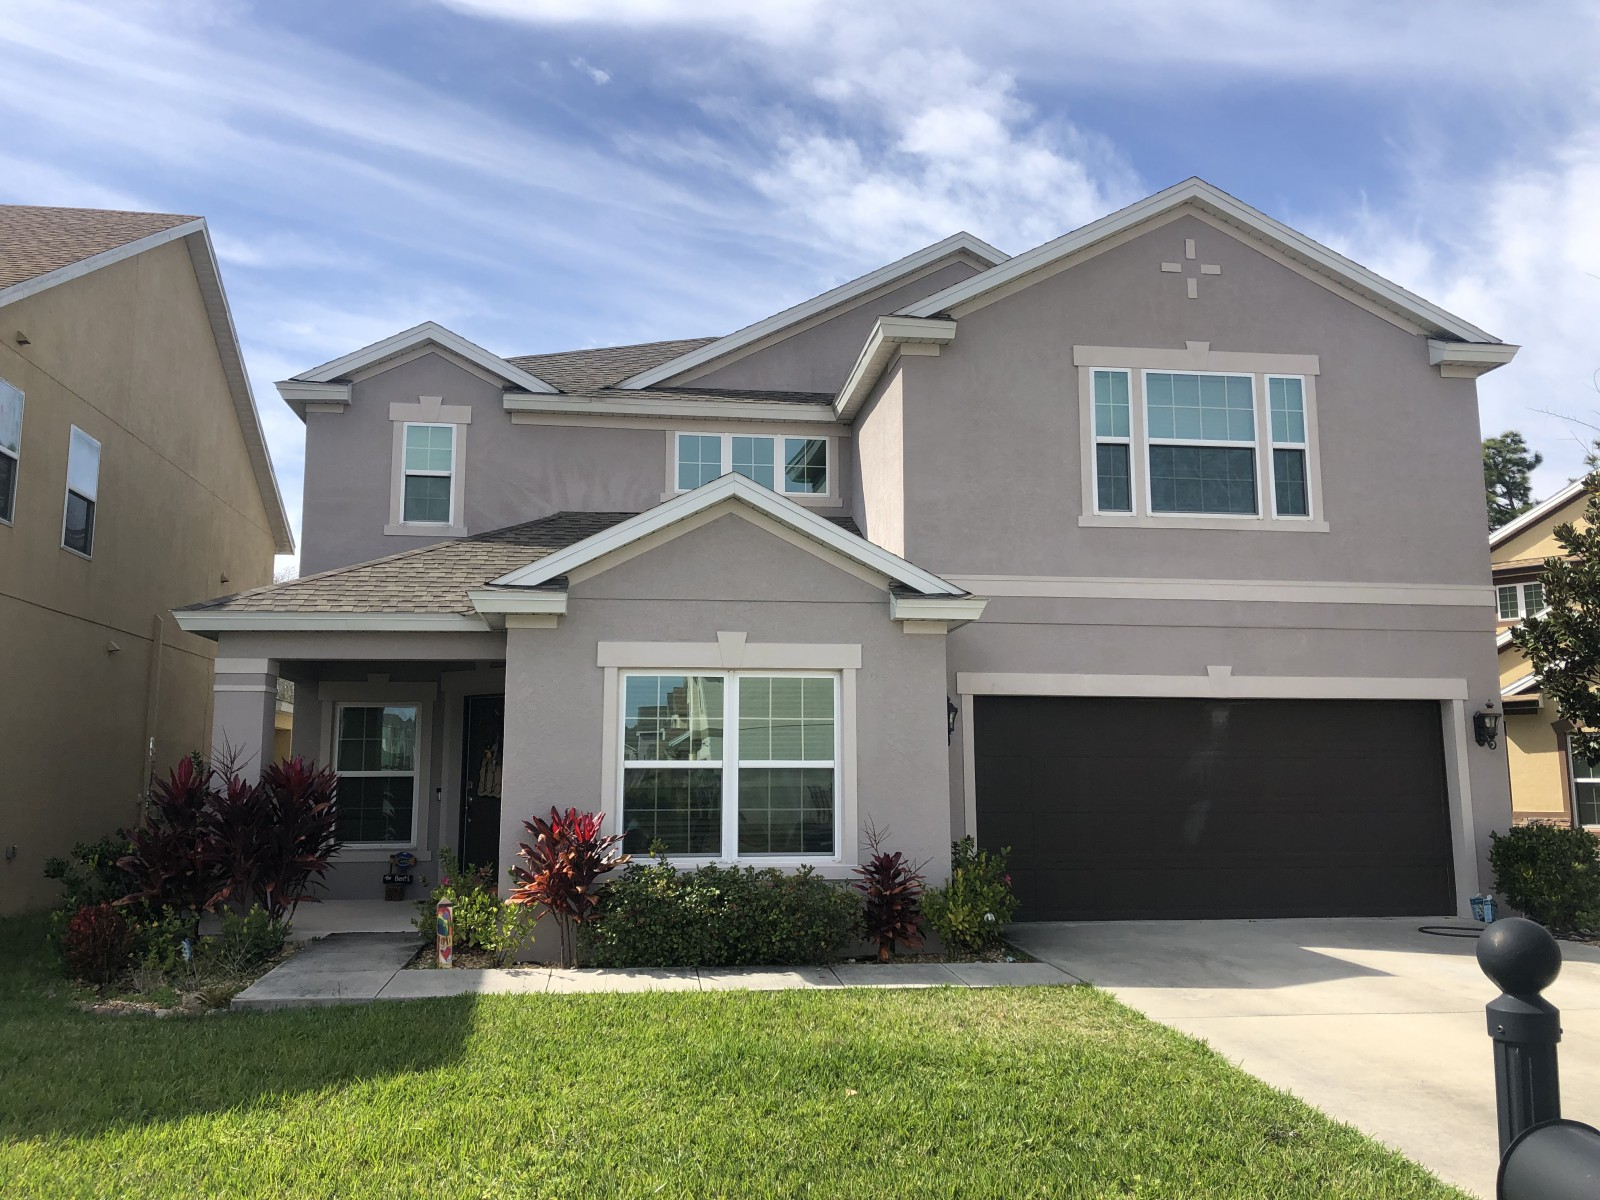 🏠 Coming Soon – 4BD/3BA HOME in Orlando, FL 32828! 🌟 Highlights: No Rear Neighbors • Open Floor Plan • Bonus Loft • Oversized Master • Minutes to UCF & the Waterford Lakes Town Center • and much more.Live, work and play in close proximity to everything you need: shopping, dining and more in this 4BD/3BA home!